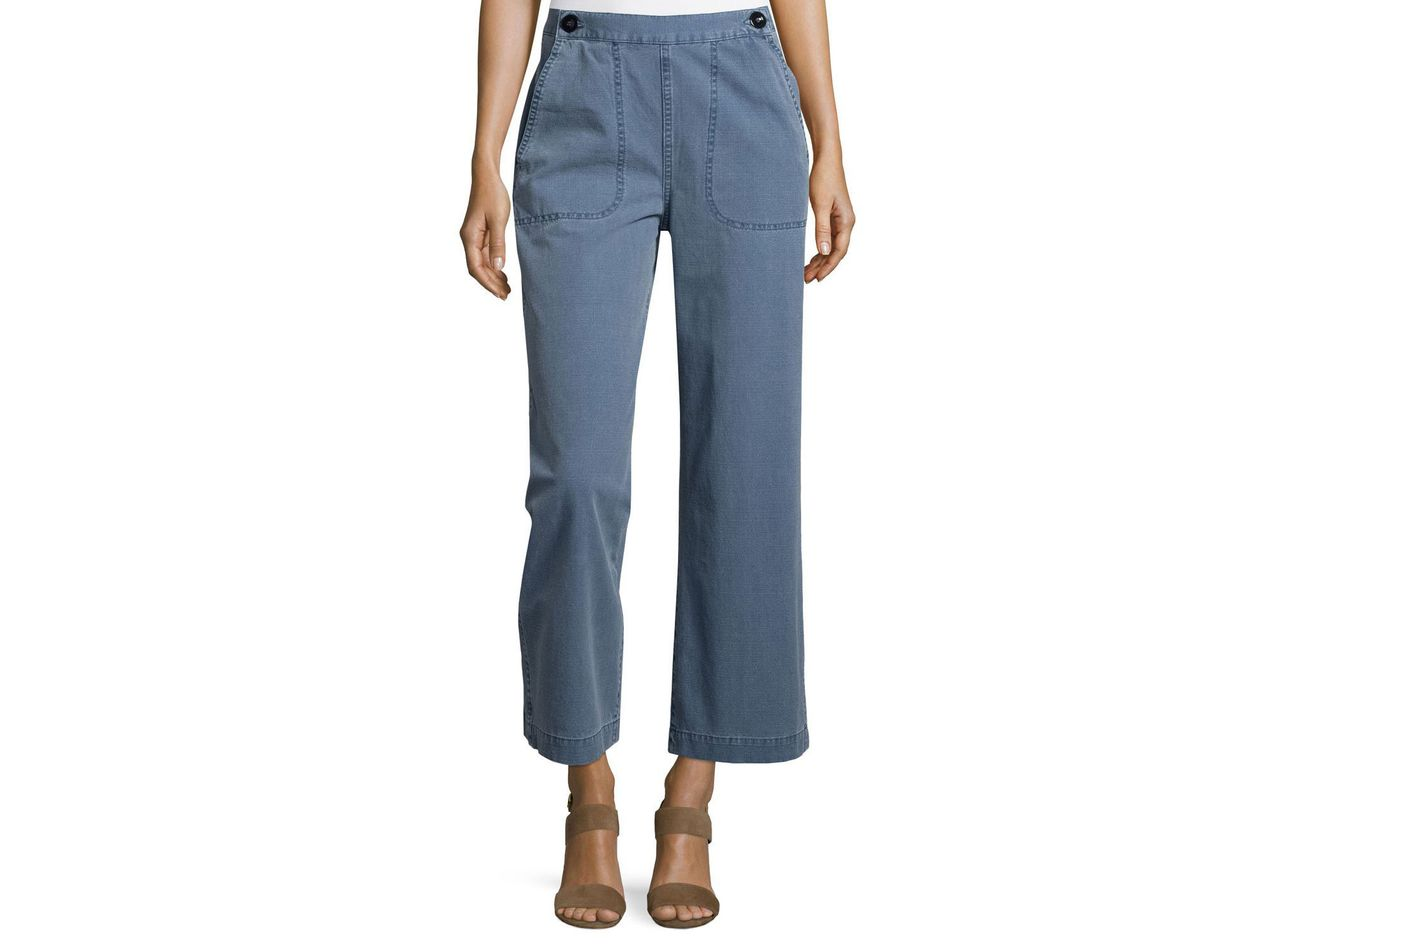 MiH Wide-Leg Nautical Pants